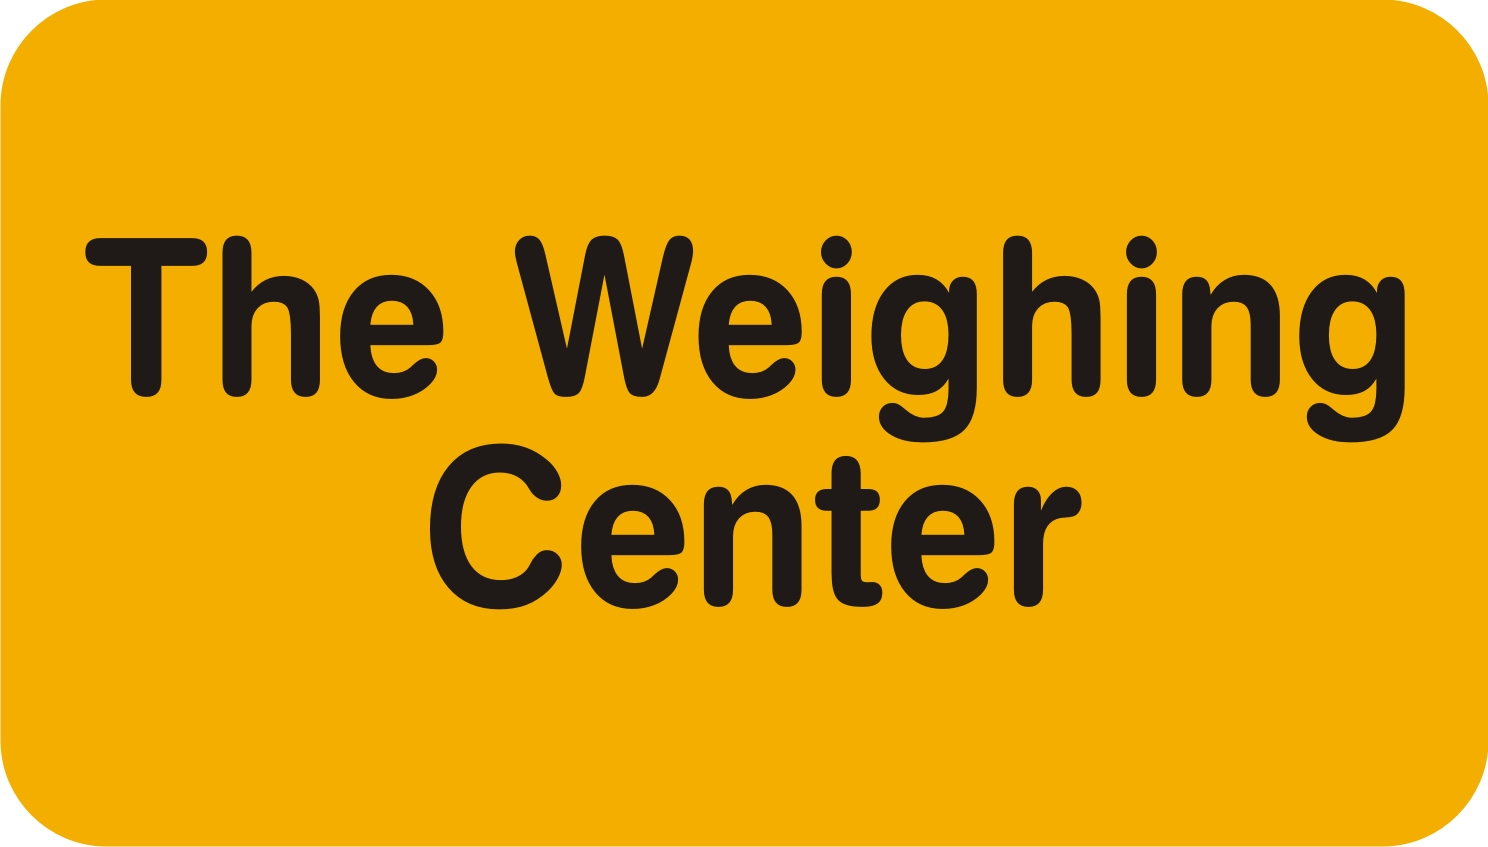 The Weighing Center